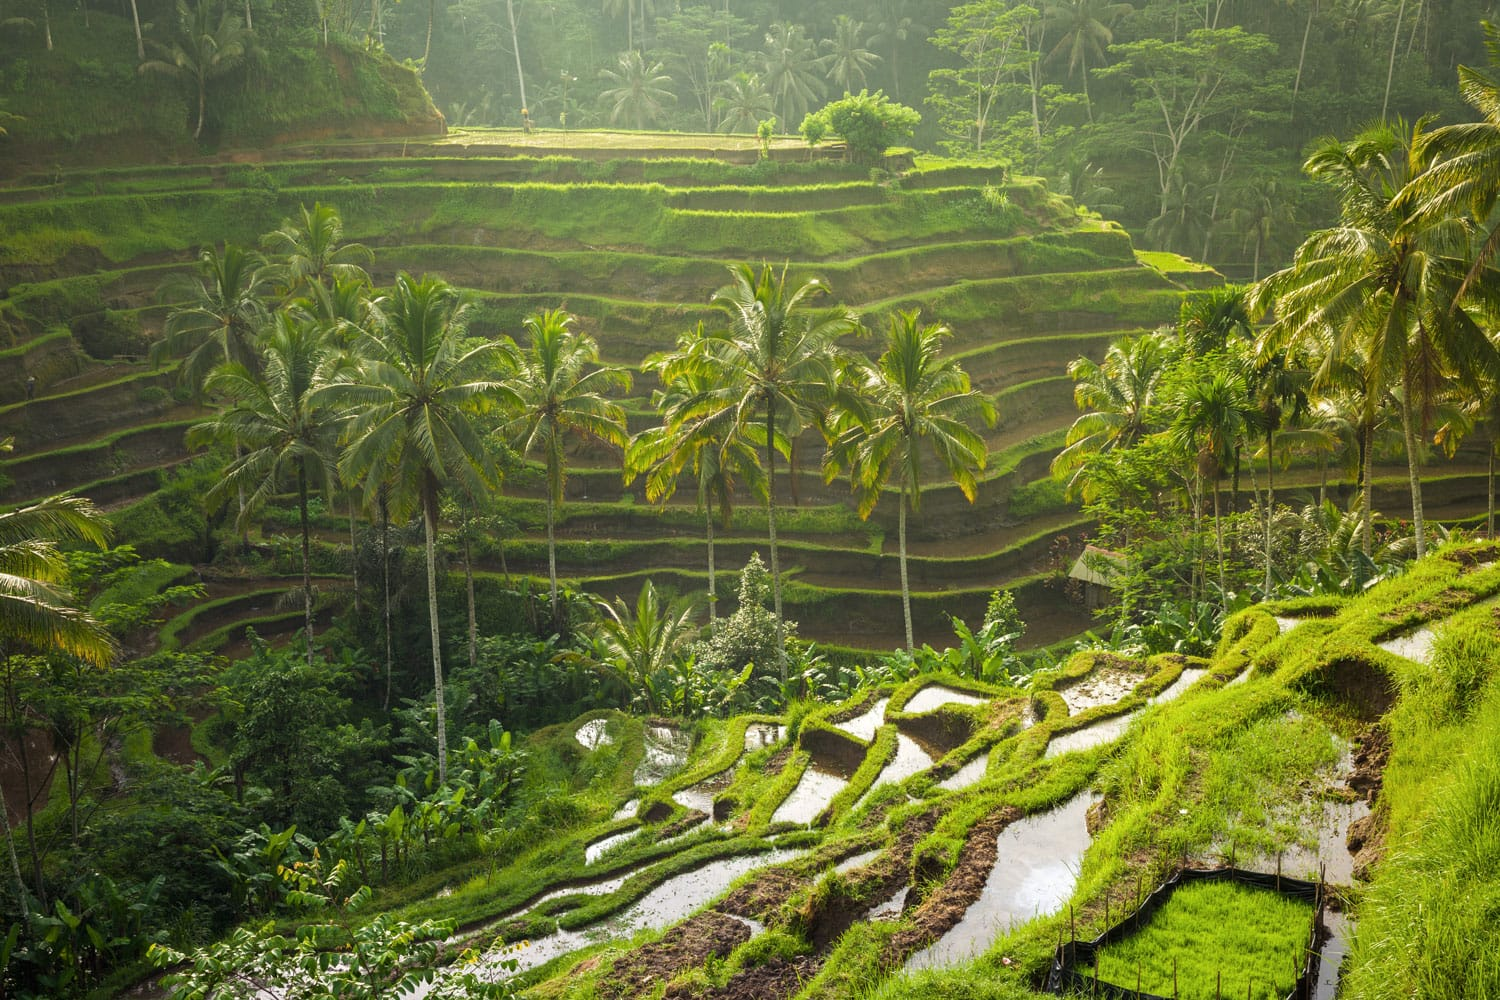 Beautiful rice terraces in the morning light near Tegallalang village, Ubud, Bali, Indonesia.